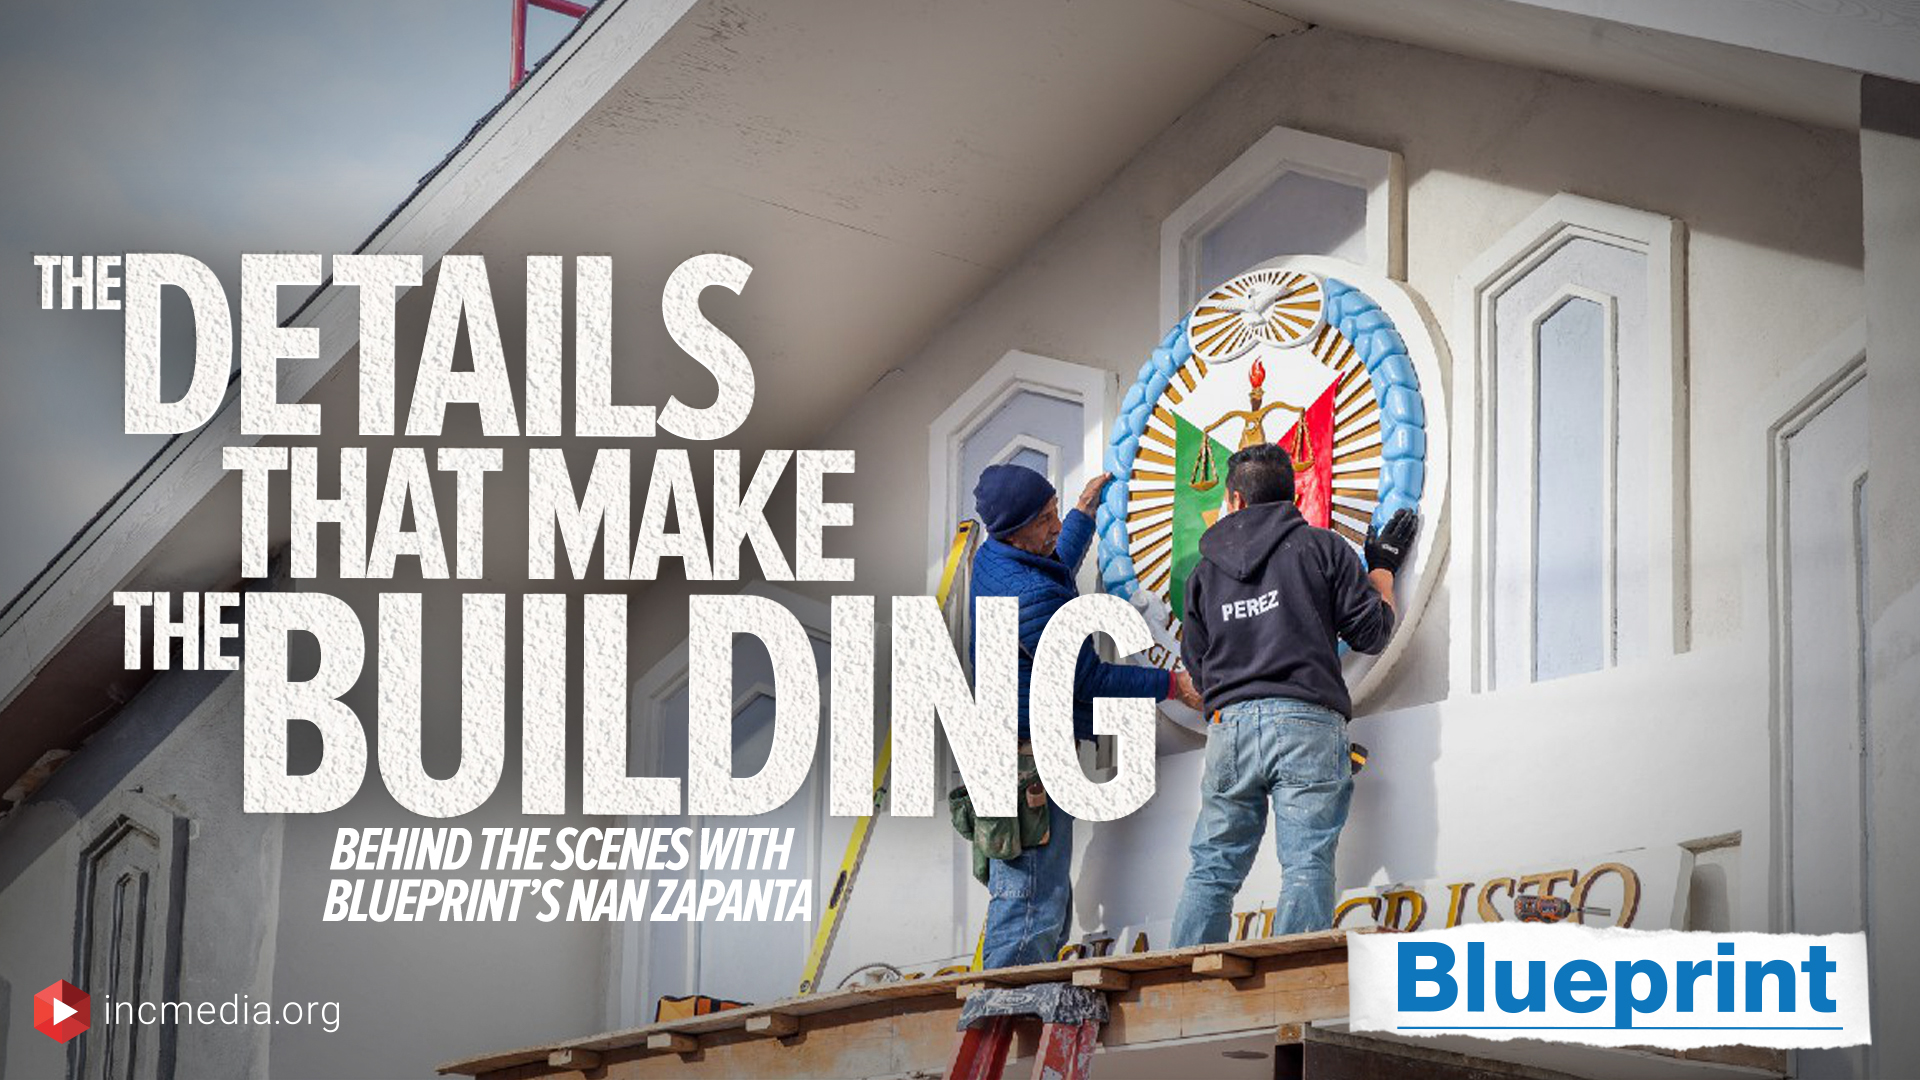 2 construction workers placing seal of the Church of Christ onto the front side of the house of worship with overlay text The Details That Make The Building. Behind The Scenes With Blueprint's Nan Zapanta.